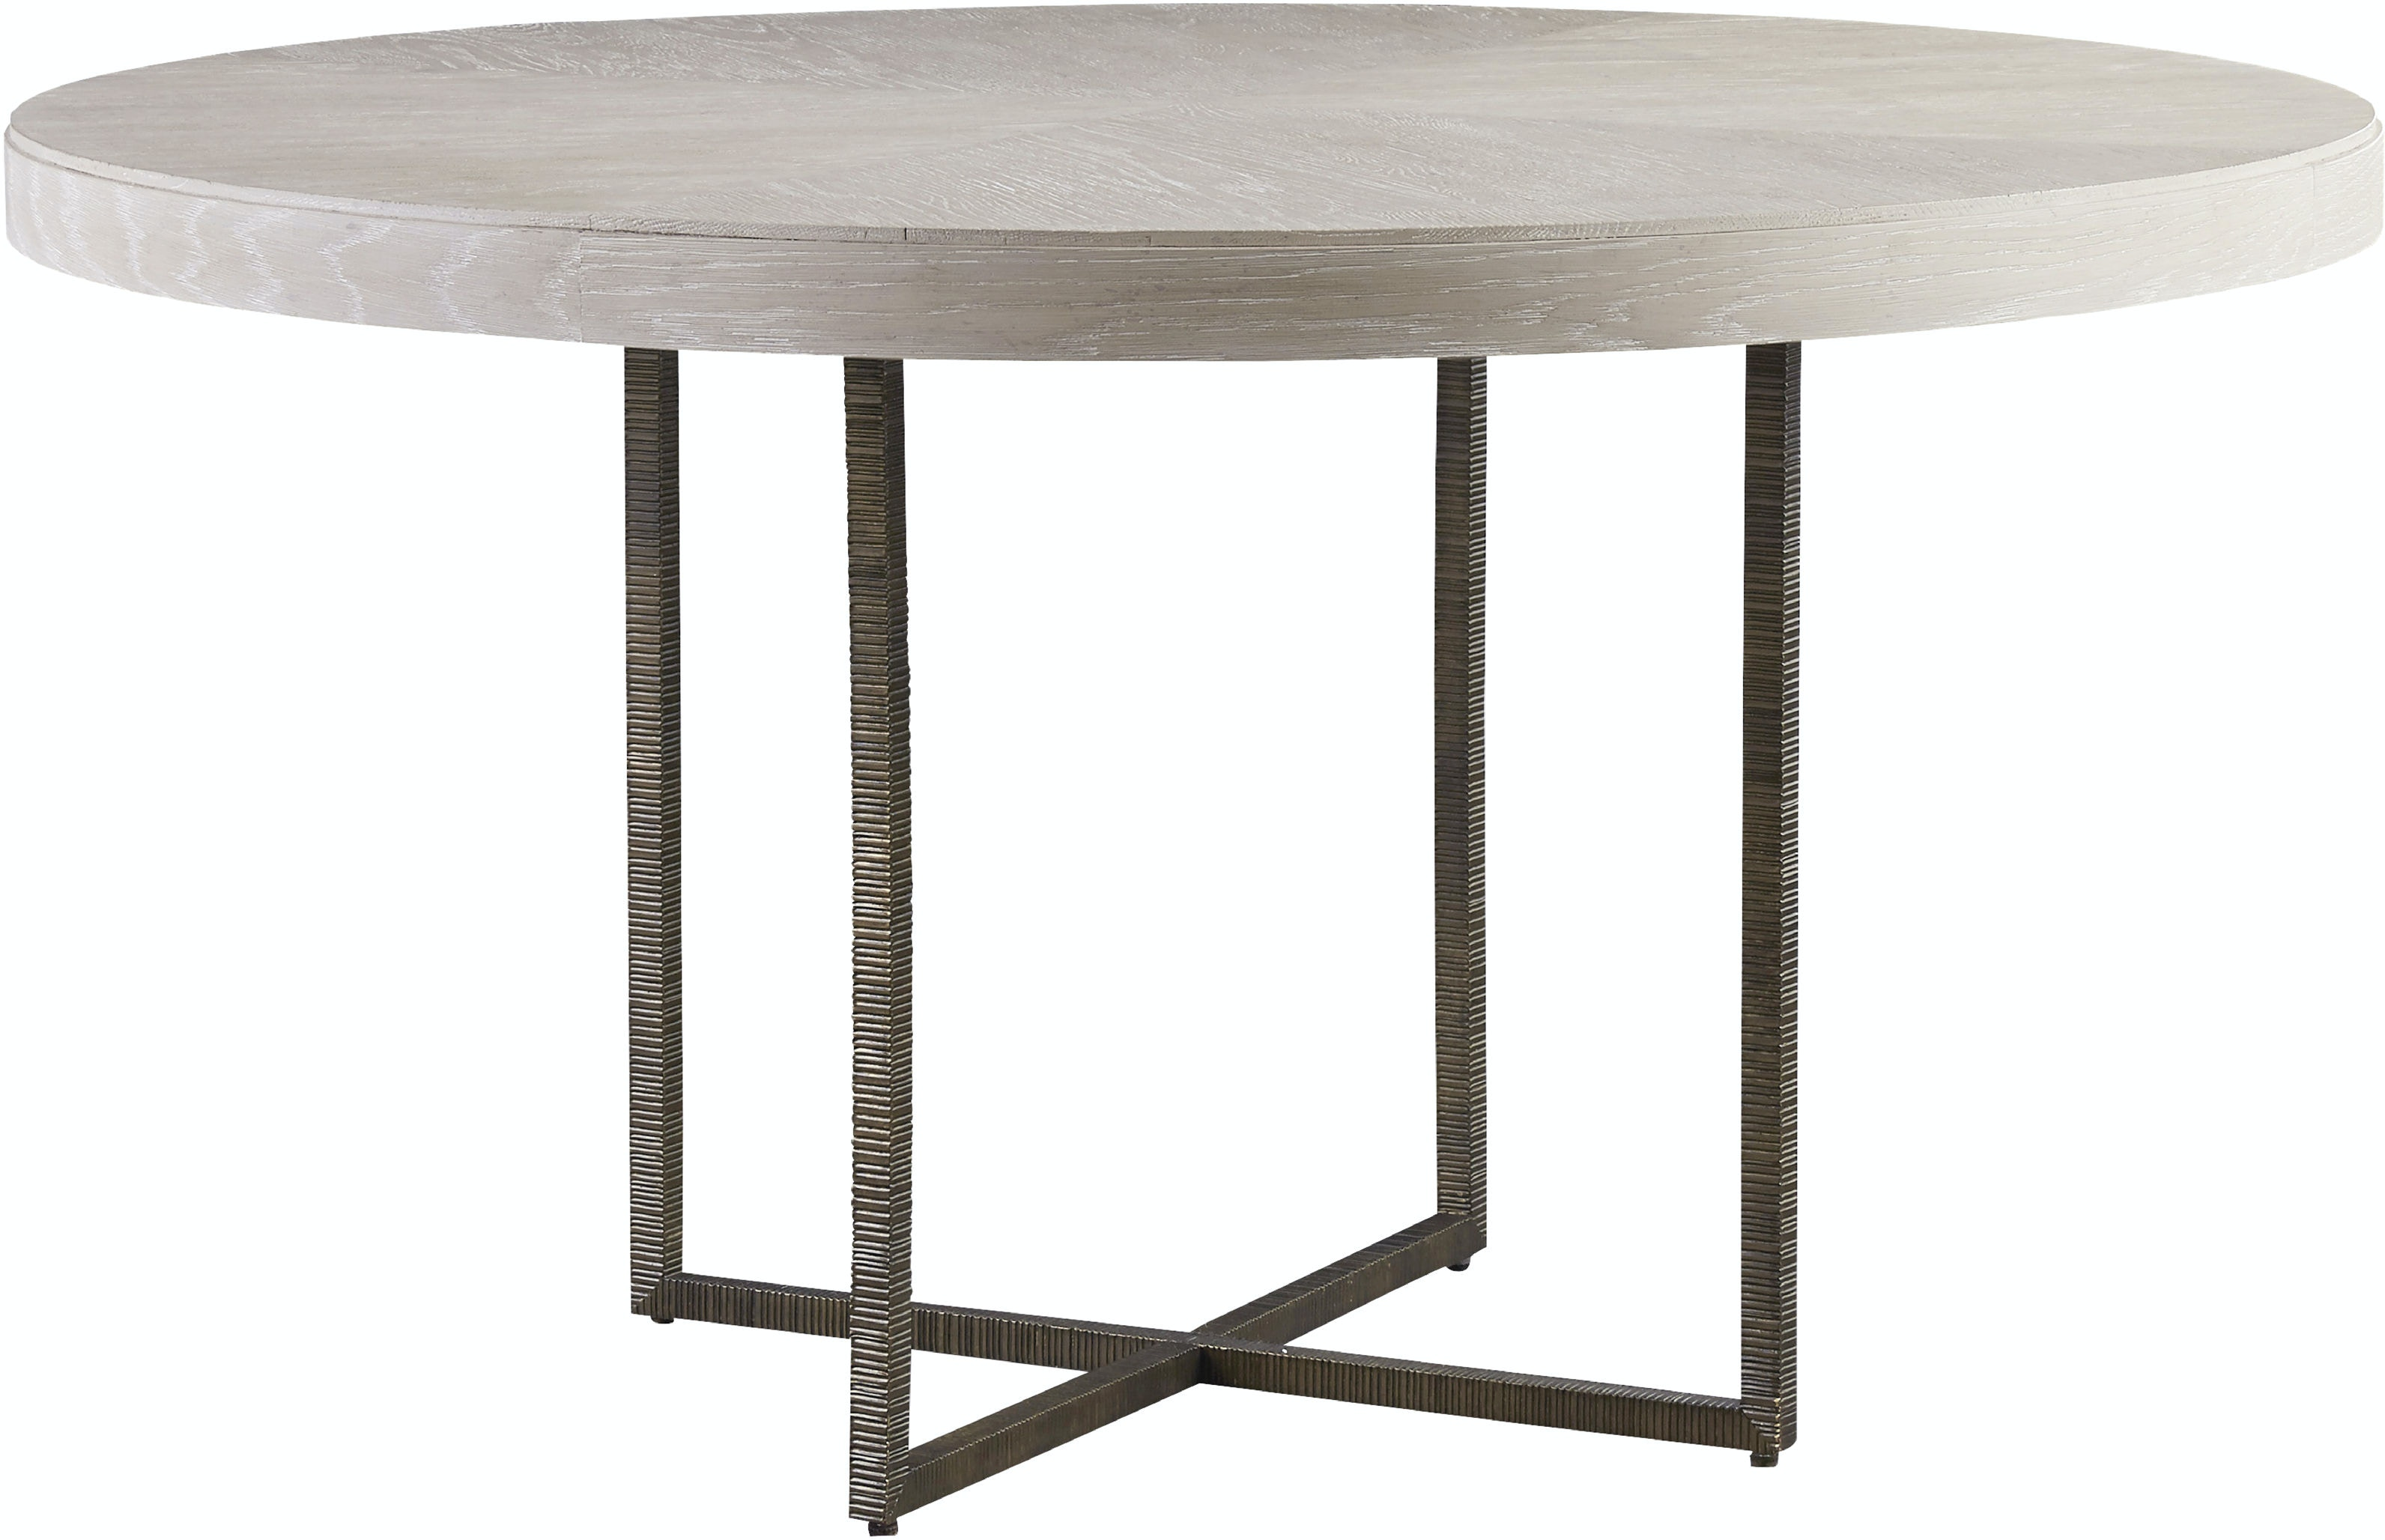 Dining Room Modern Quartz Robards Round Dining Table : 480352a from www.starfurniture.com size 1024 x 768 jpeg 35kB